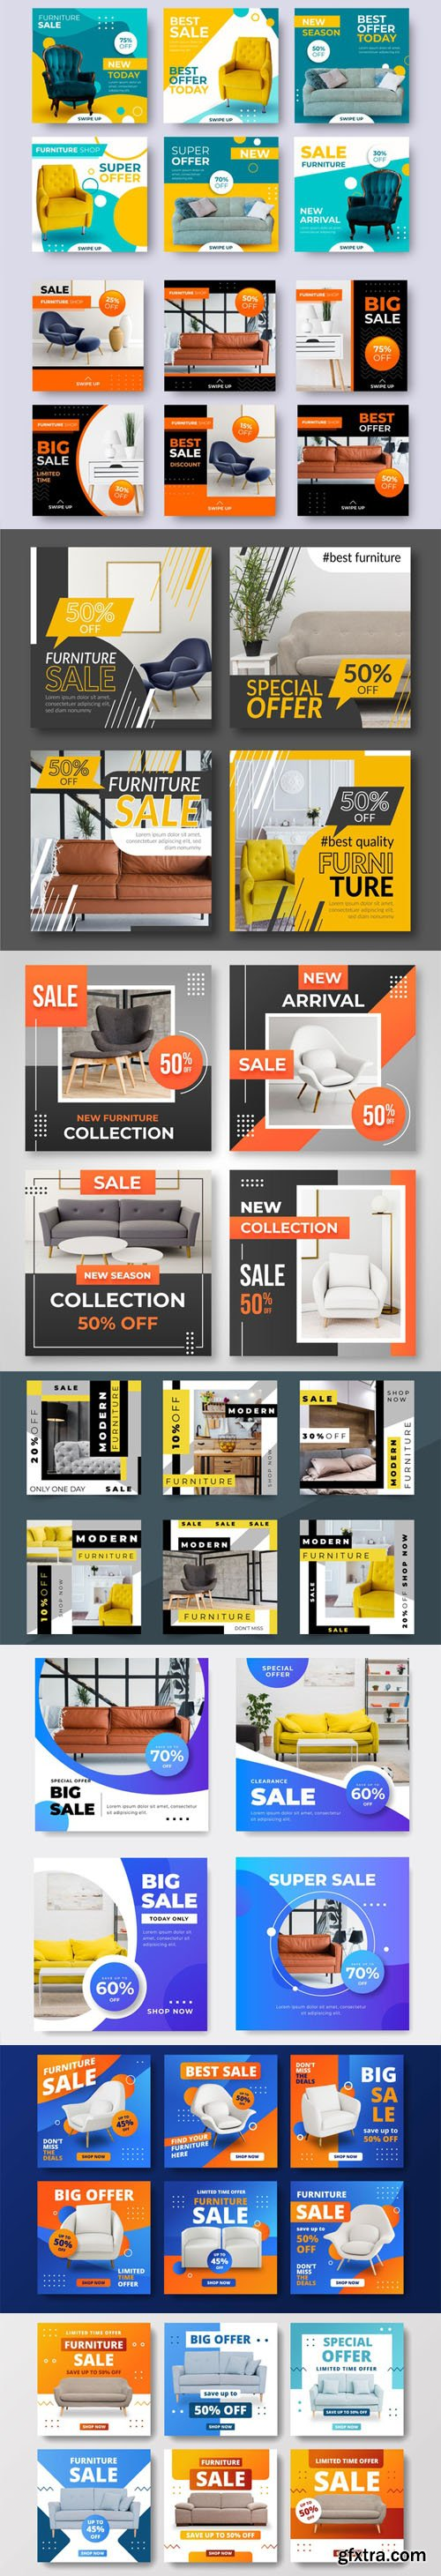 Furniture Sale Instagram Posts Vector Collection